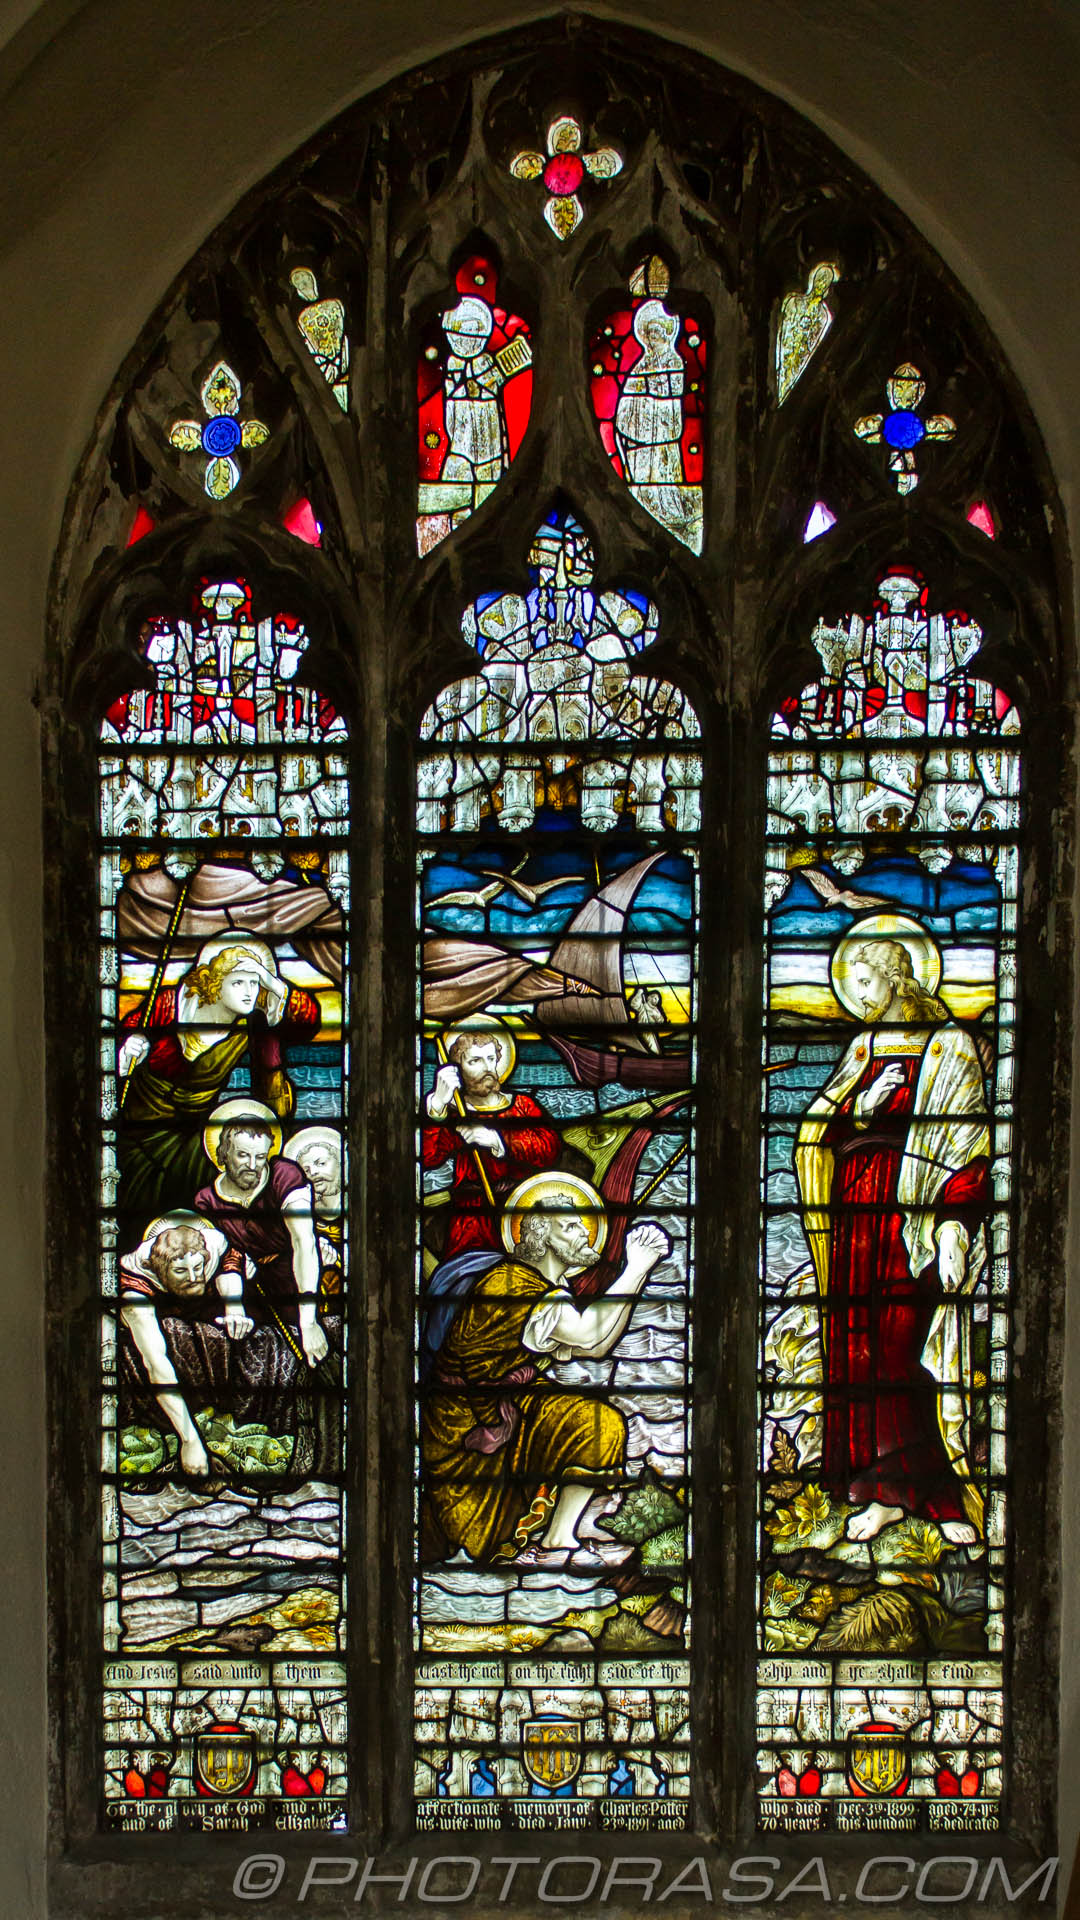 http://photorasa.com/parish-church-st-peter-st-paul-headcorn/second-north-side-stained-glass-window/